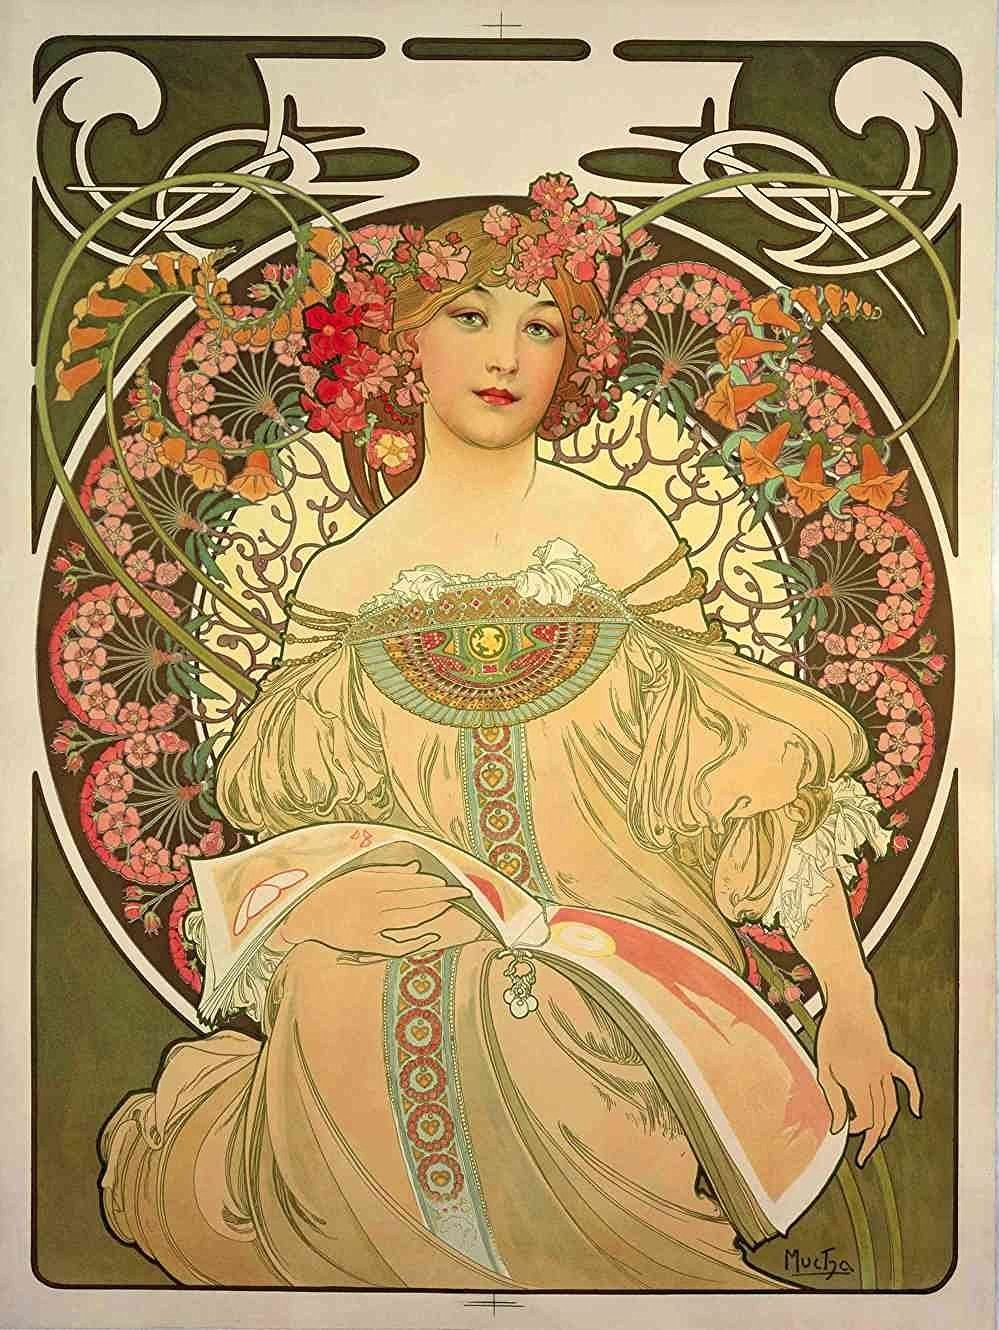 Amazon.com: The Museum Outlet - Obraz by Alphonse Mucha - Poster Print Online Buy (24 X 18 Inch): Posters & Prints